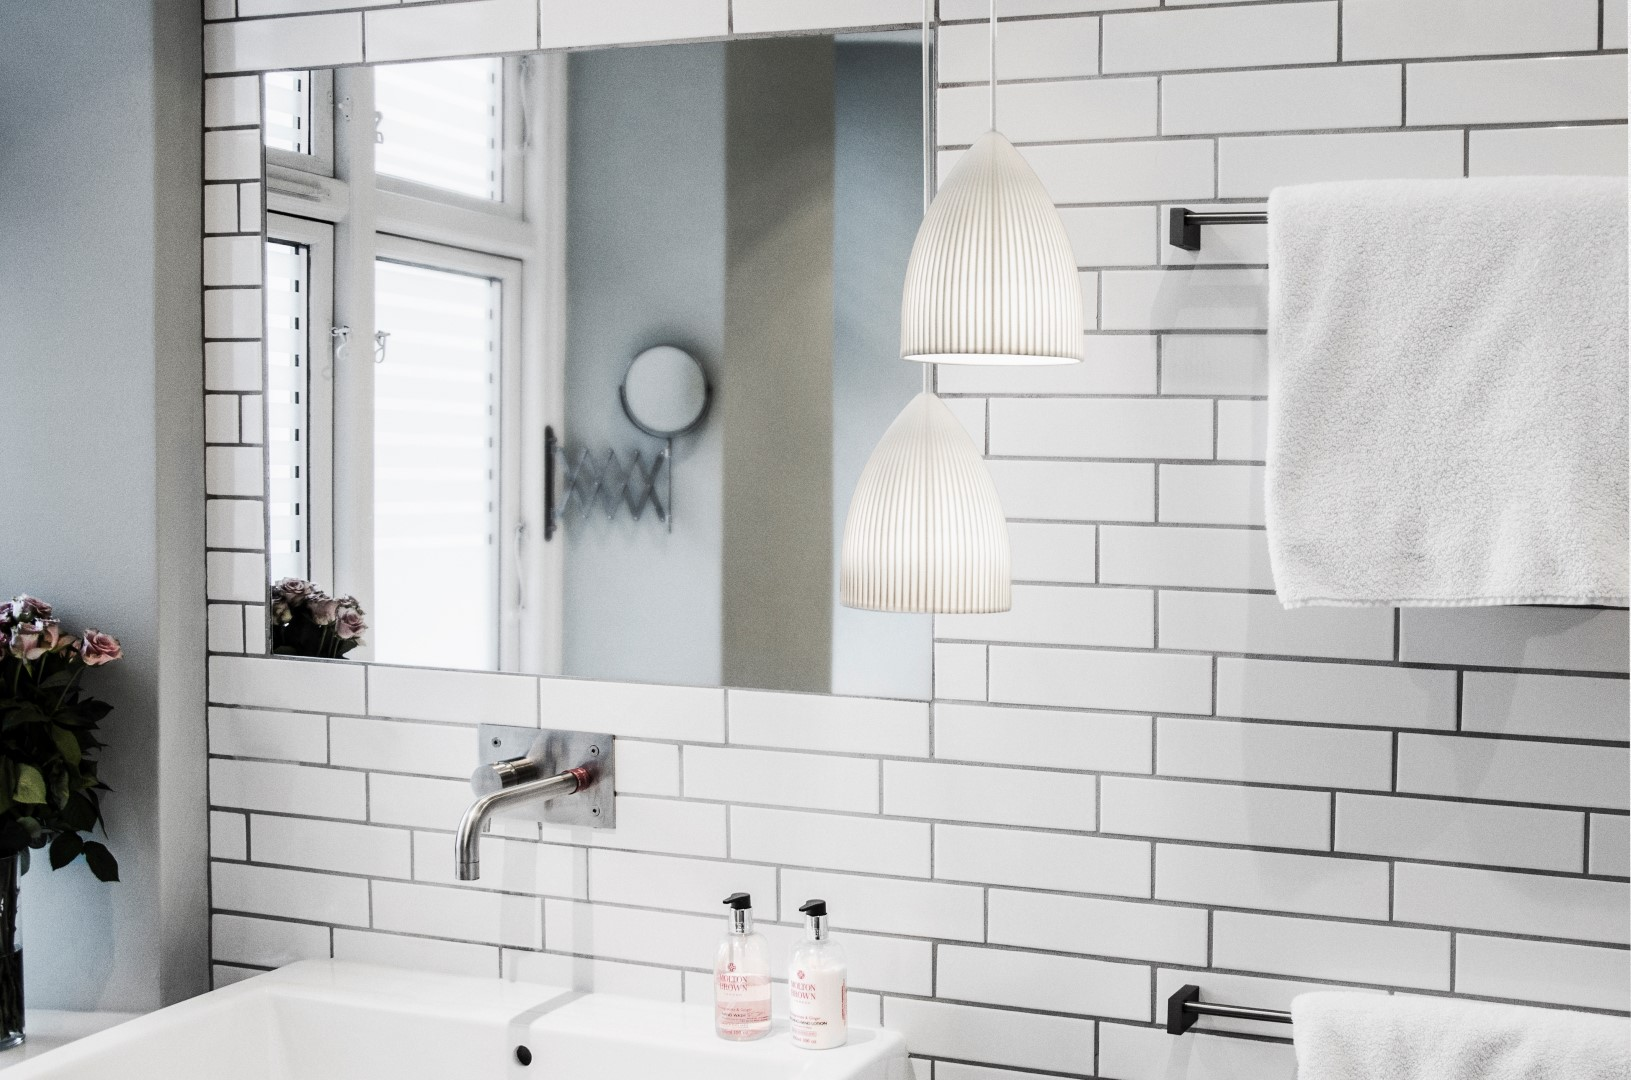 Top 6 Bathroom Tile Trends for 2017 - The LuxPad